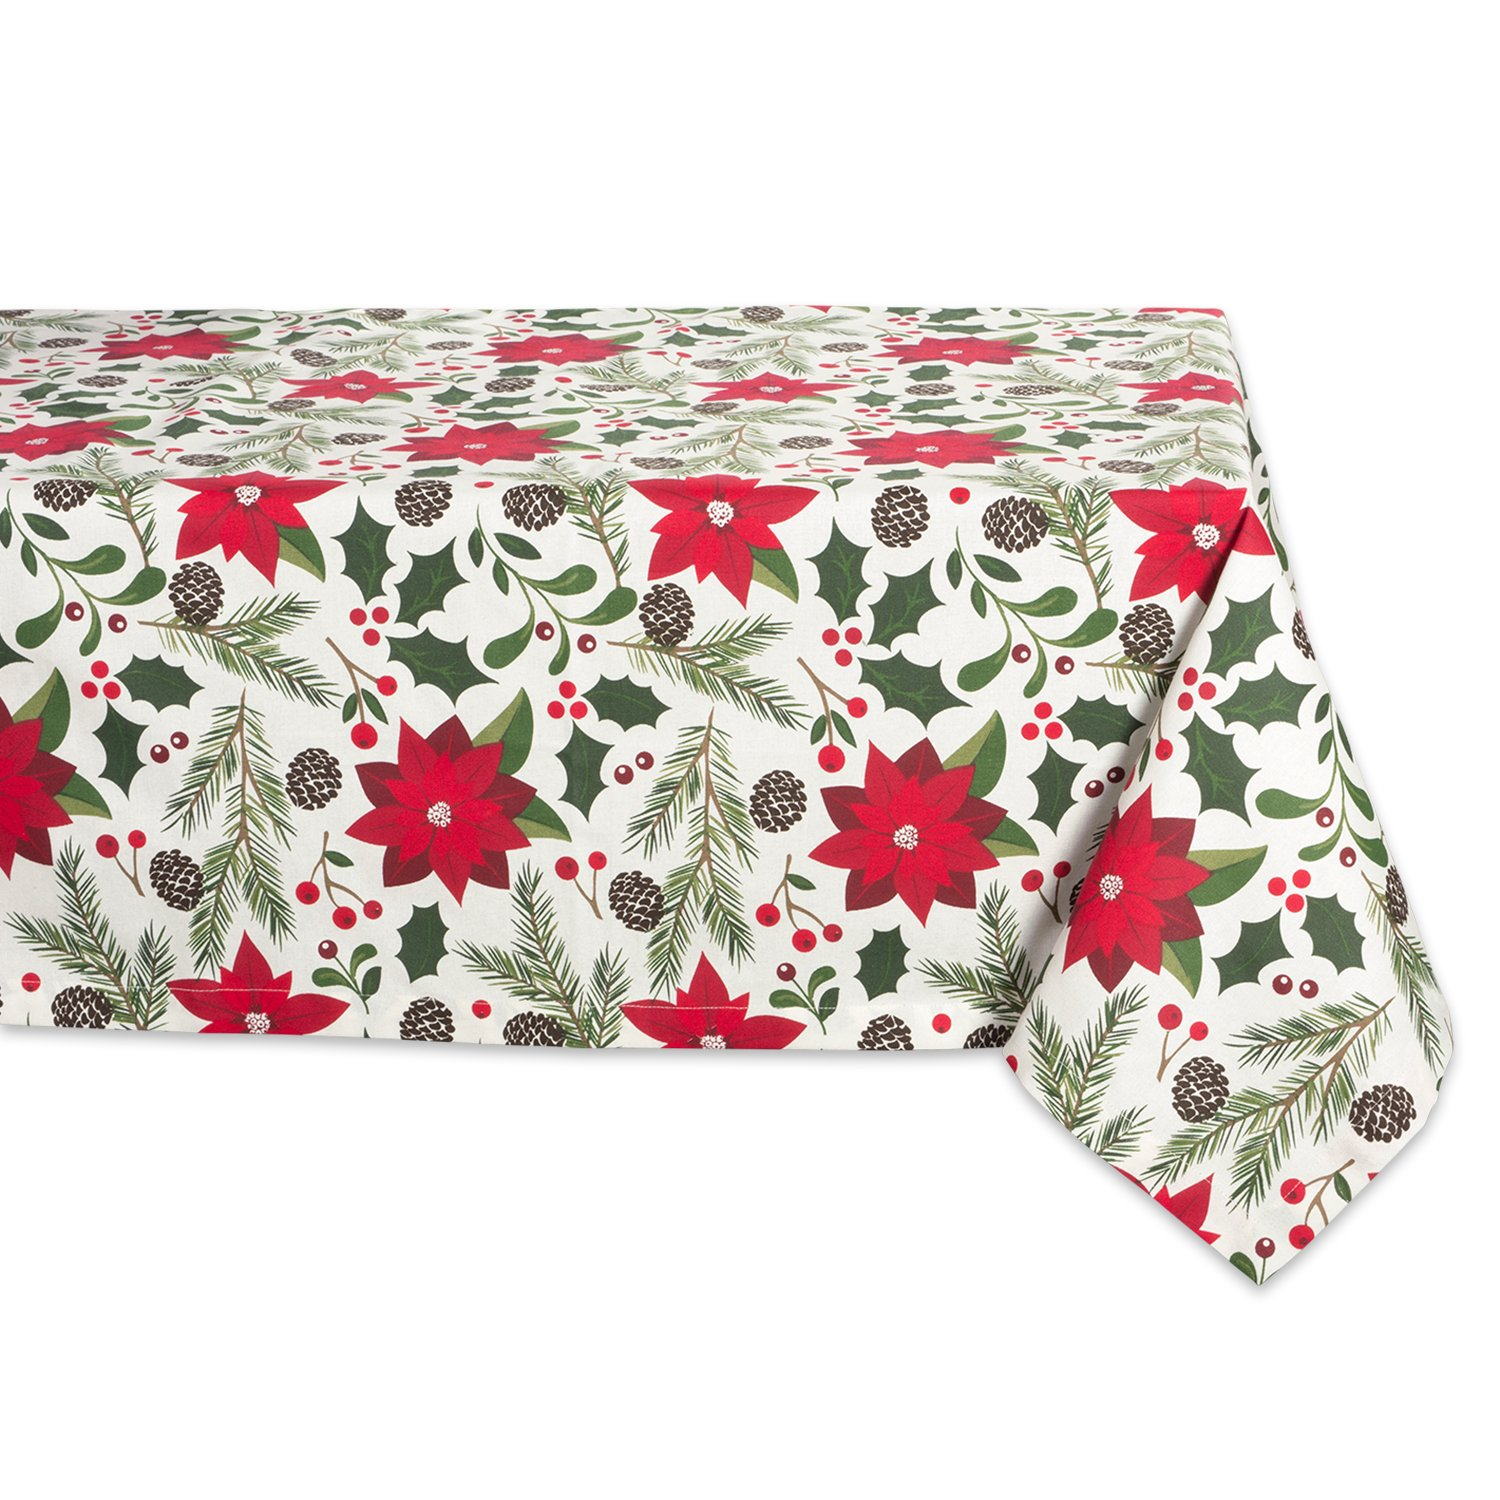 Set of 2-Woodland Dishtowel Set CAMZ38059 DII 100/% Cotton Christmas Dish Towel 18x28